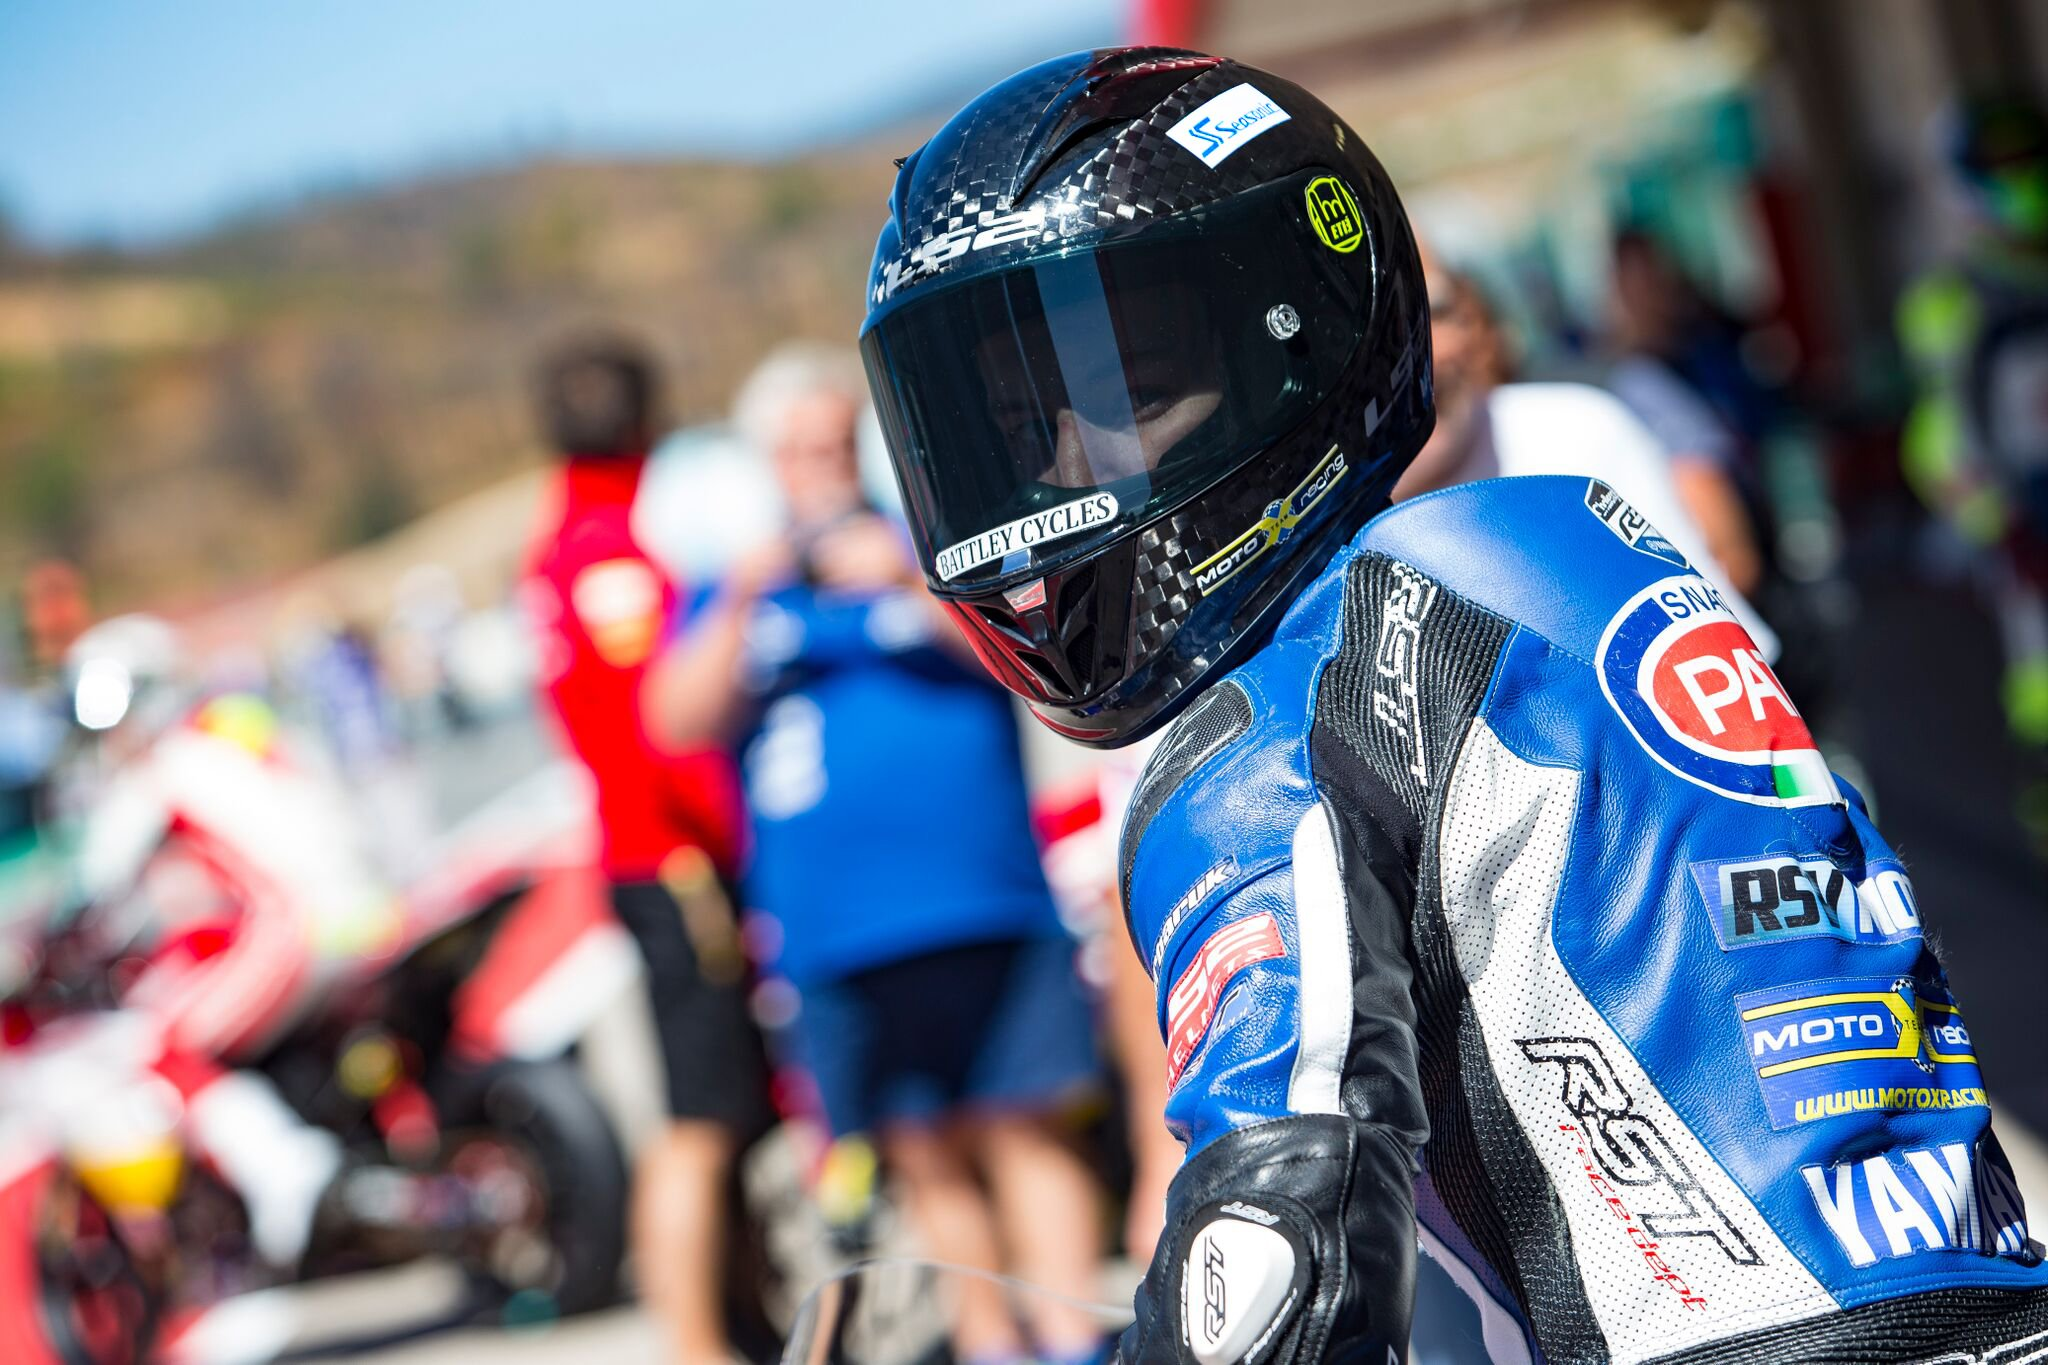 WORLDSSP300: KALININ TOOK IMPORTANT POINTS IN HARD RACE IN PORTUGRAL